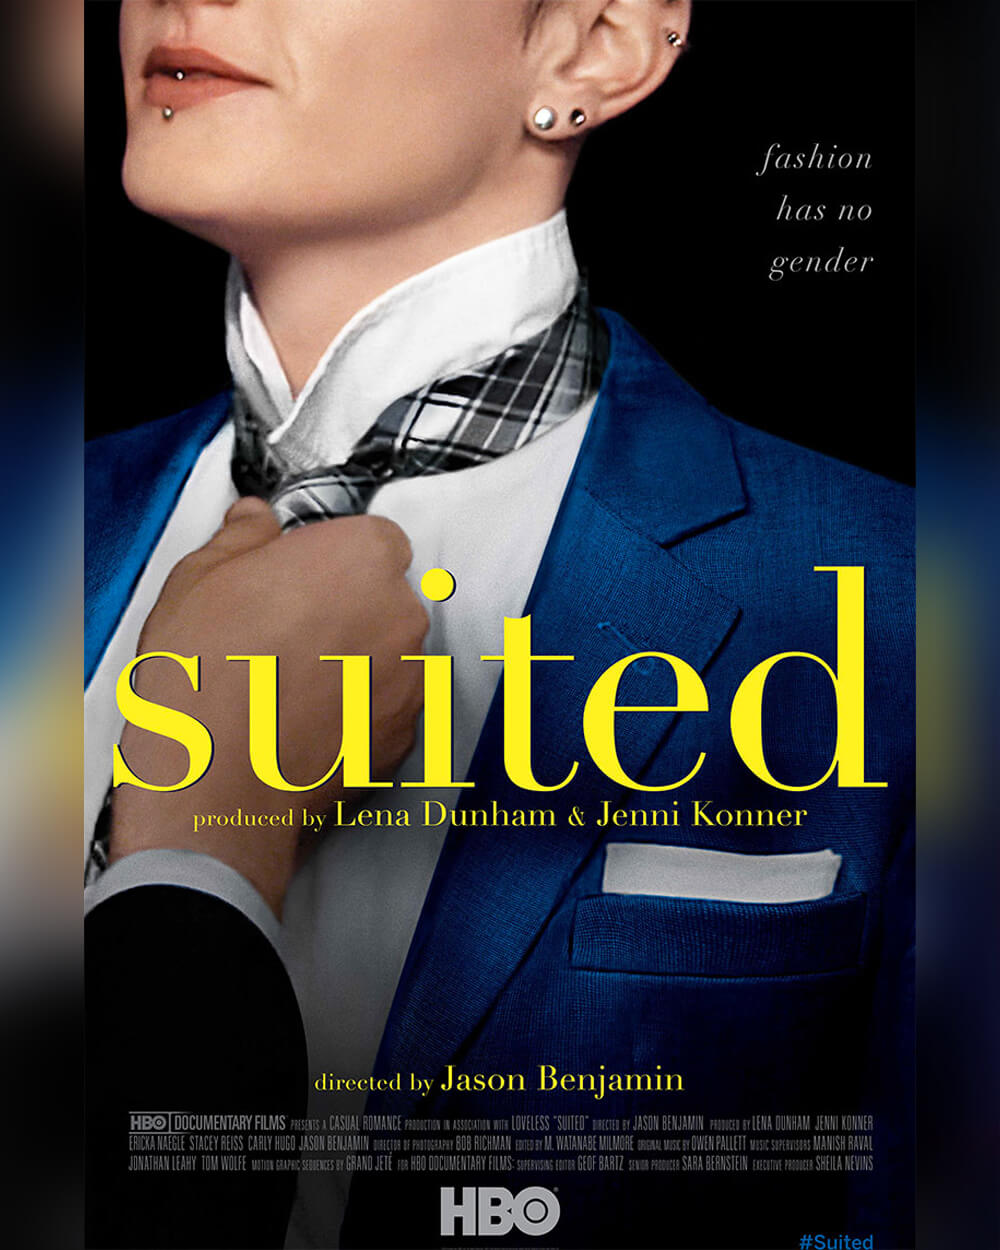 SUITED HBO documentary